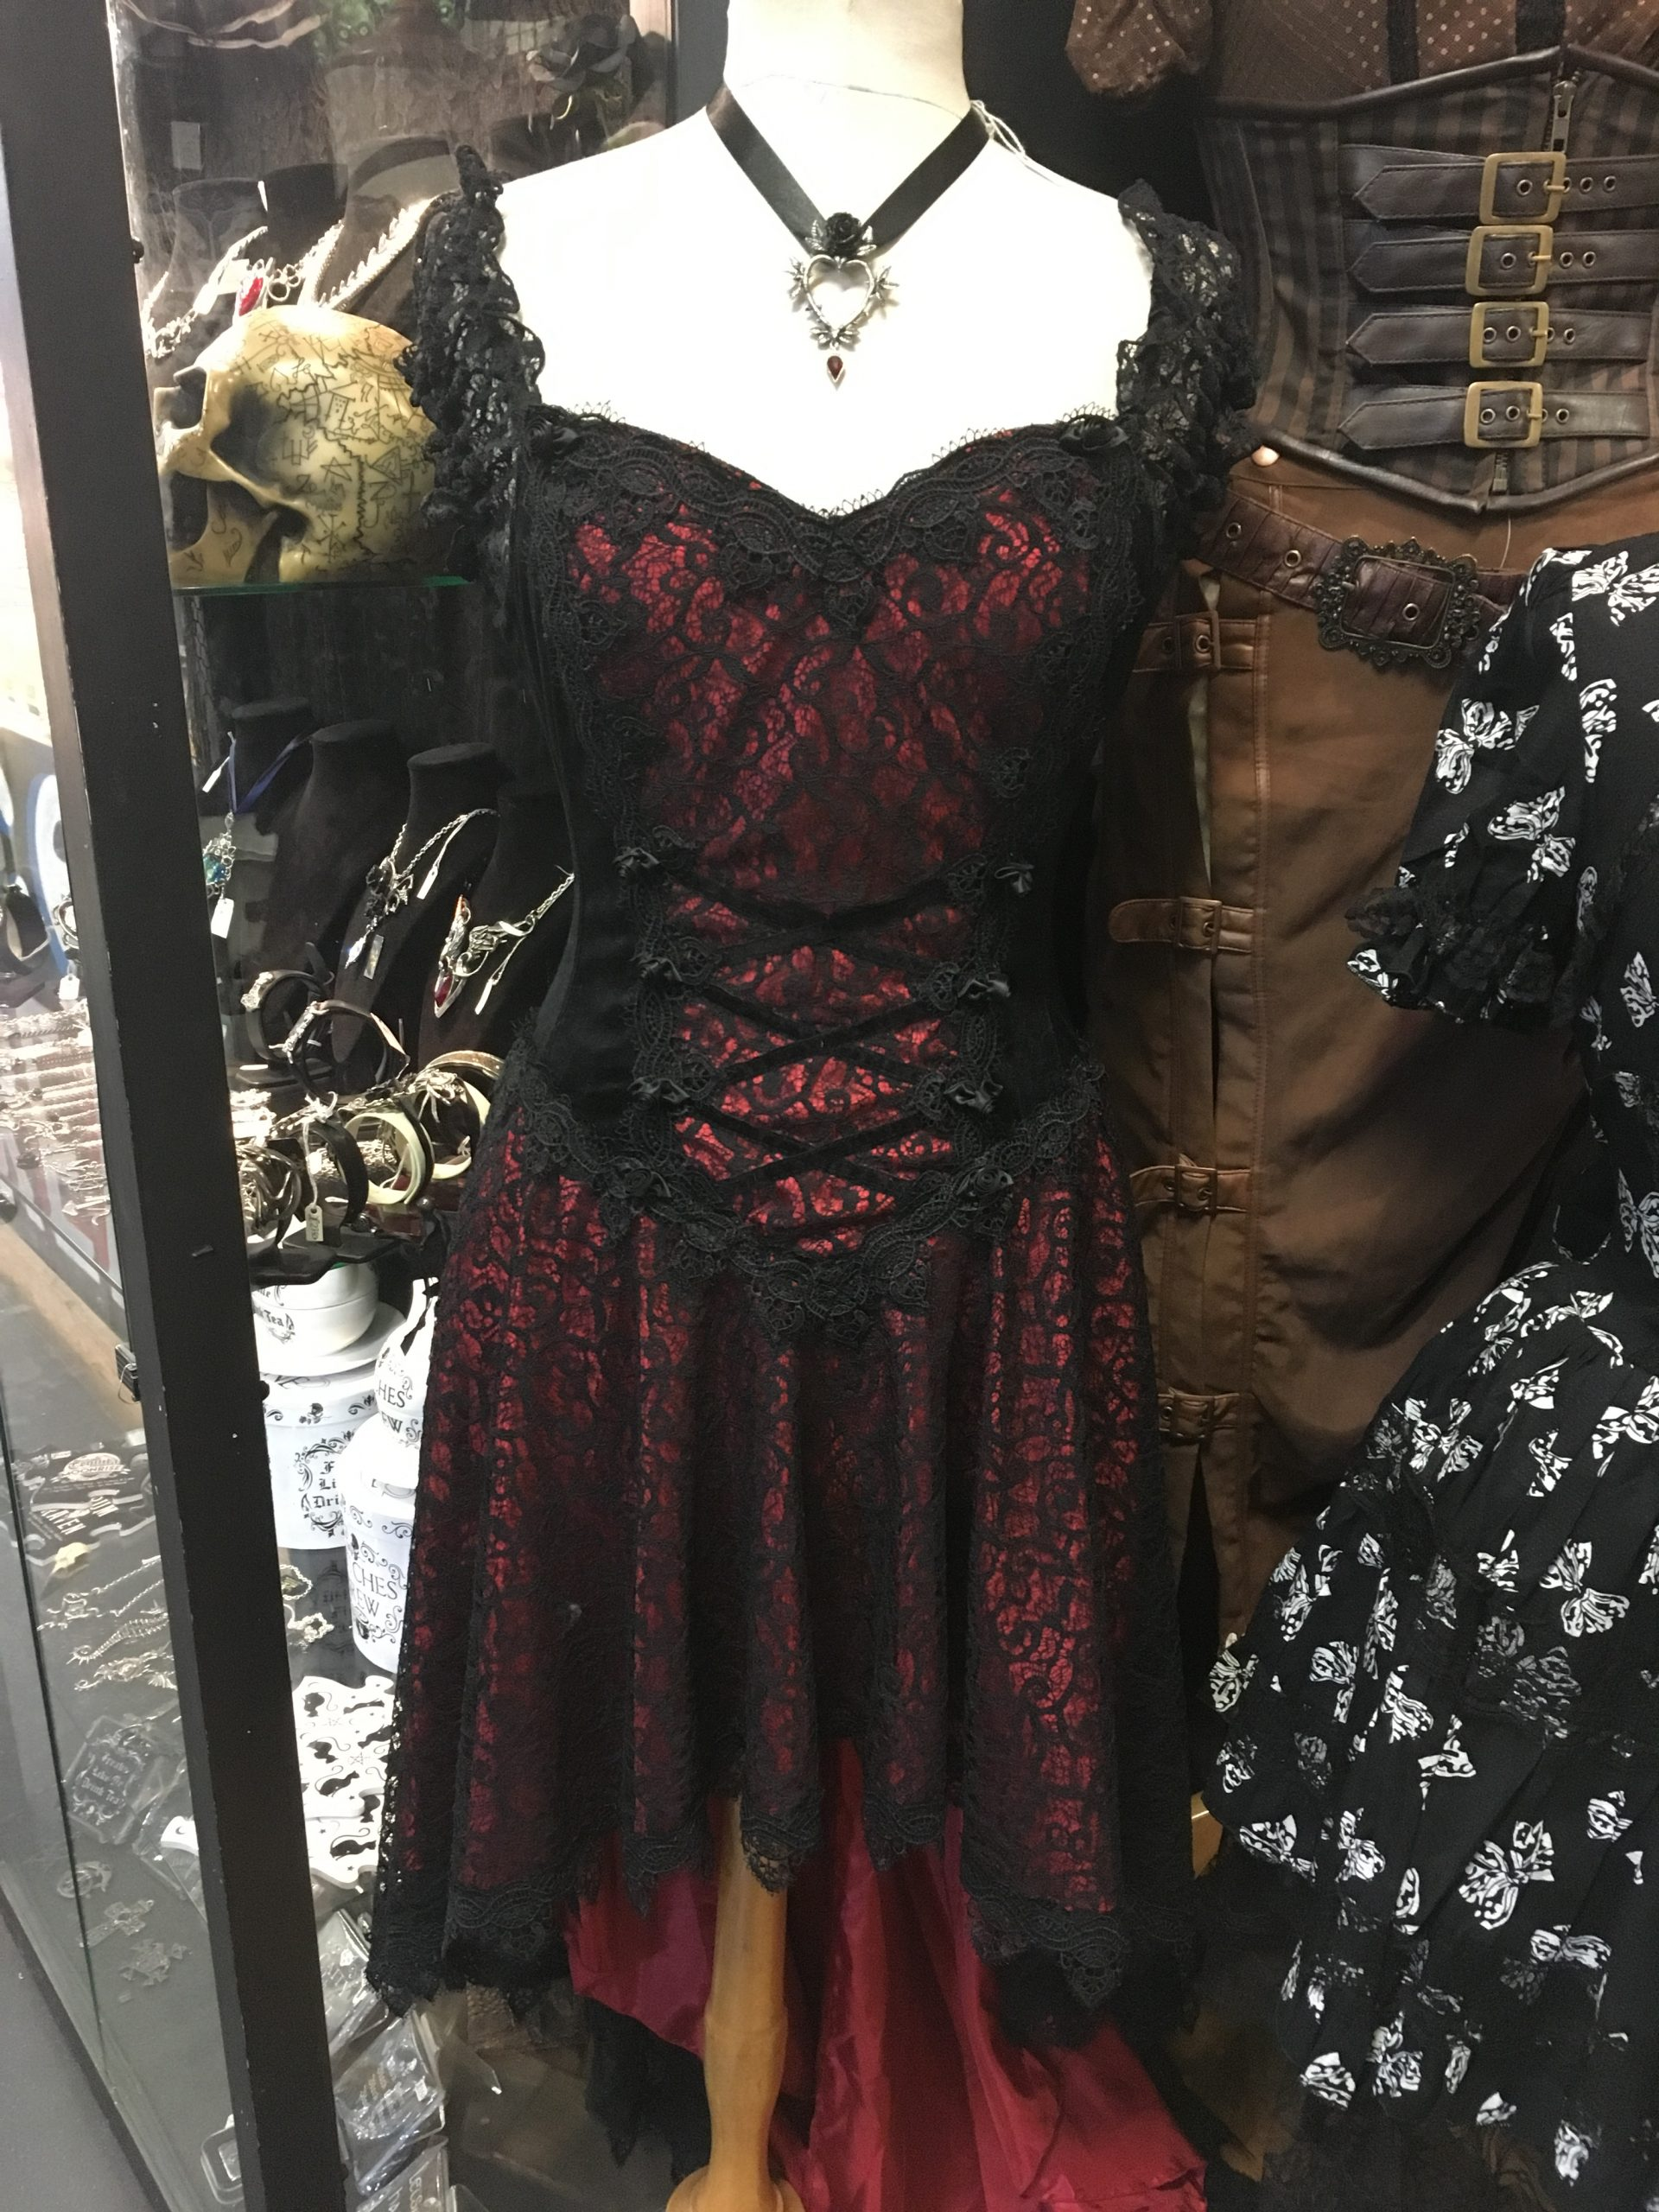 Steampunk dress with red material covered in black webbing